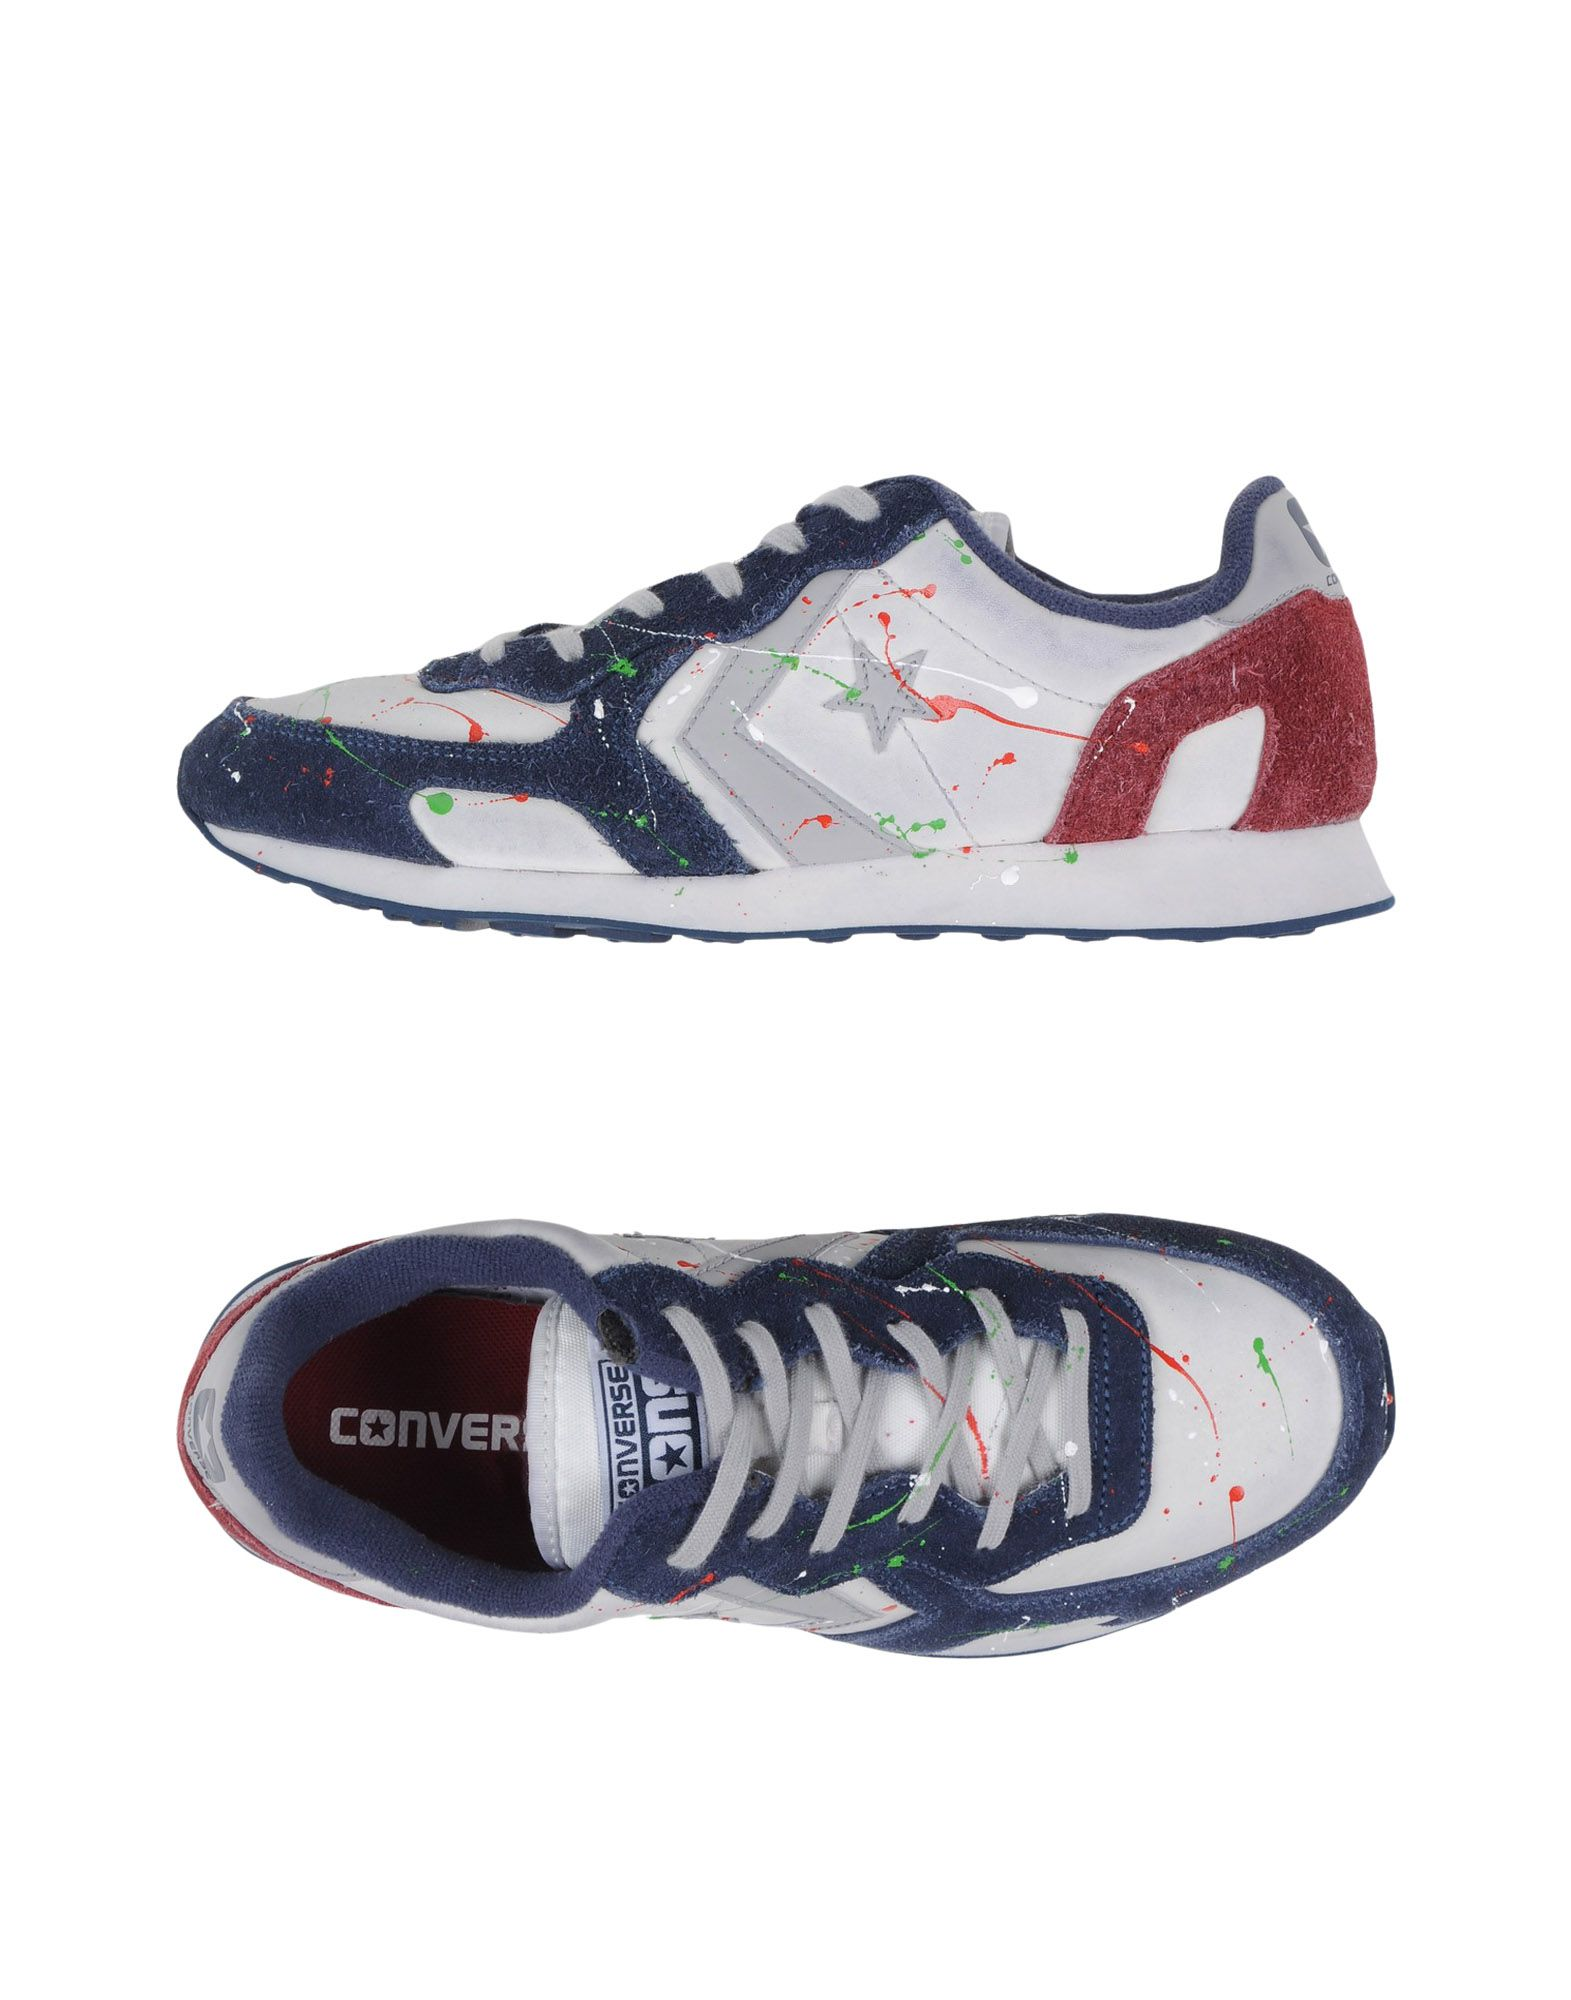 Sneakers Converse Limited Edition Auckland Racer Denim Suede - Donna - Acquista online su